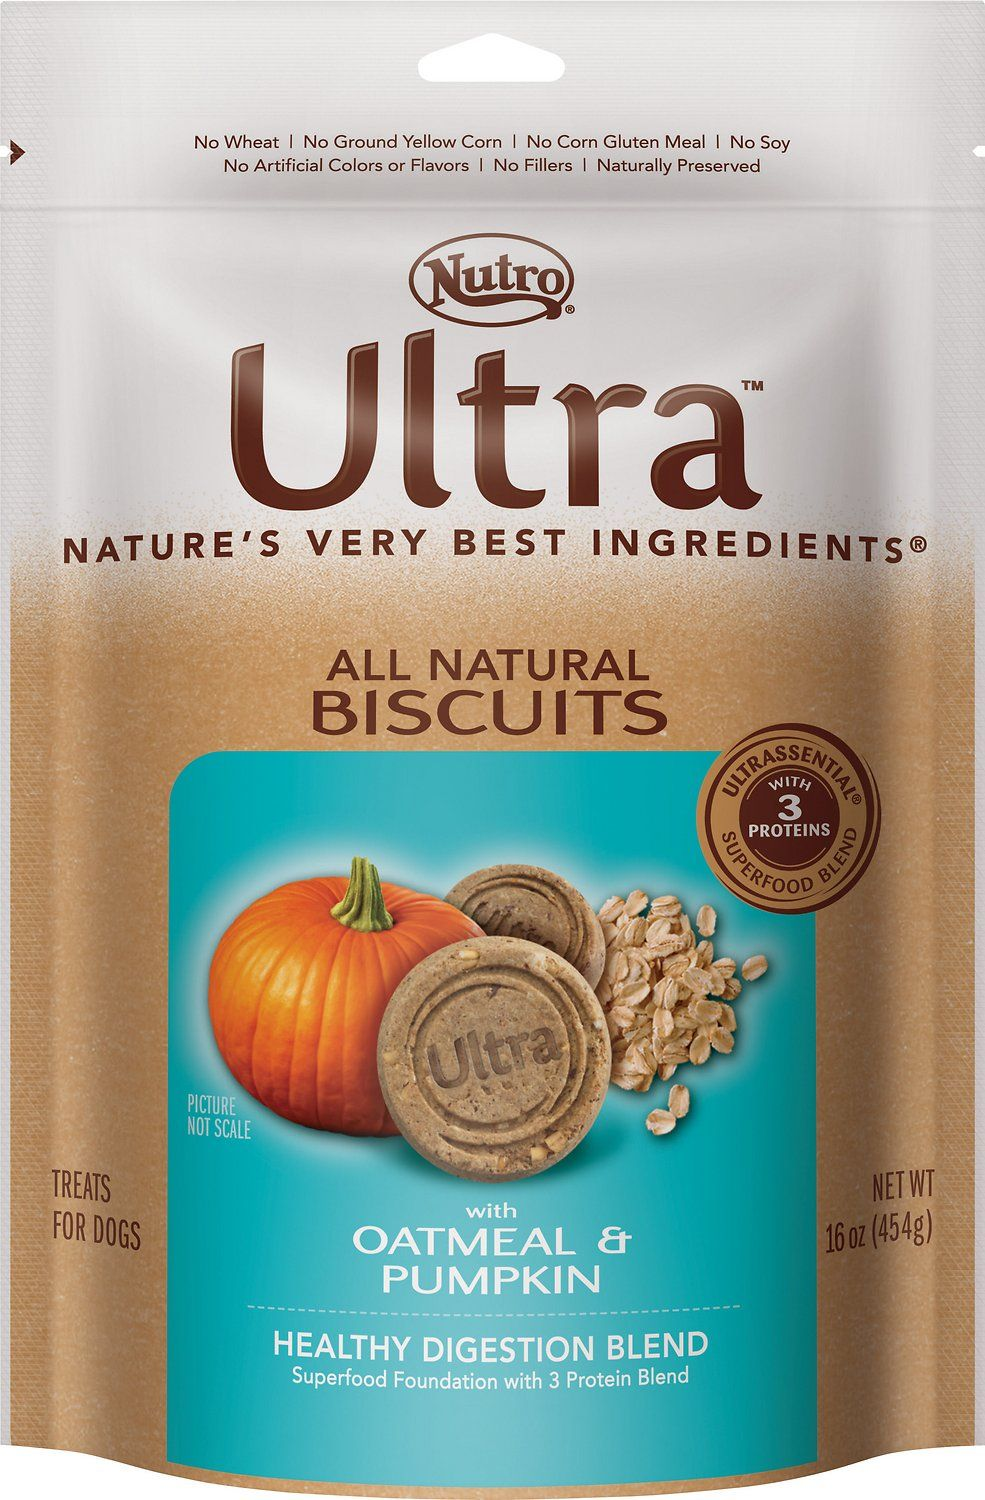 Nutro Ultra All-Natural Biscuits are made with super ...